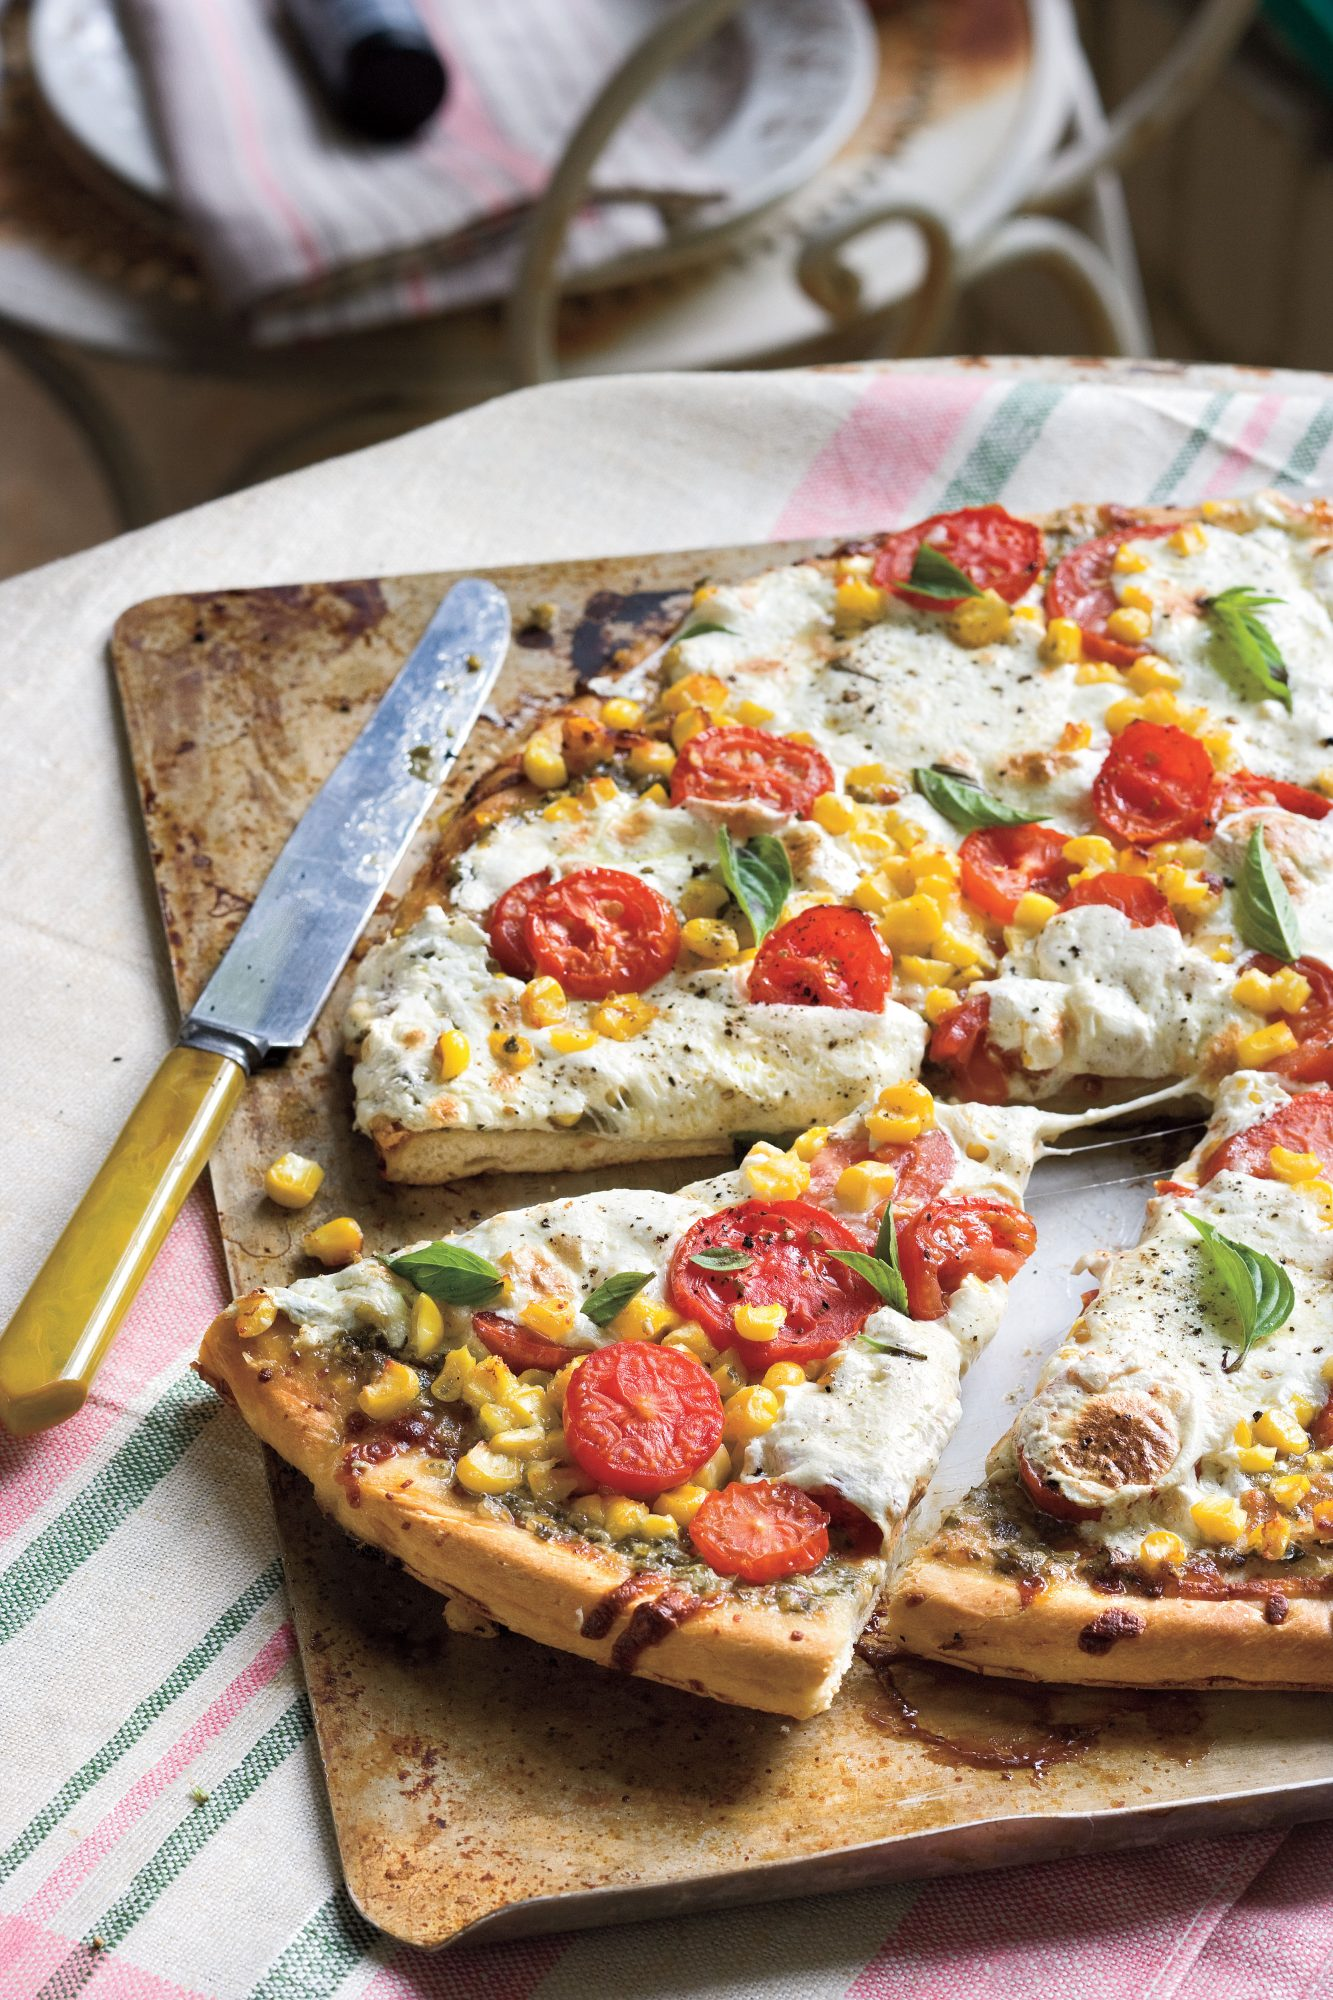 Thursday: Tomato-and-Corn Pizza